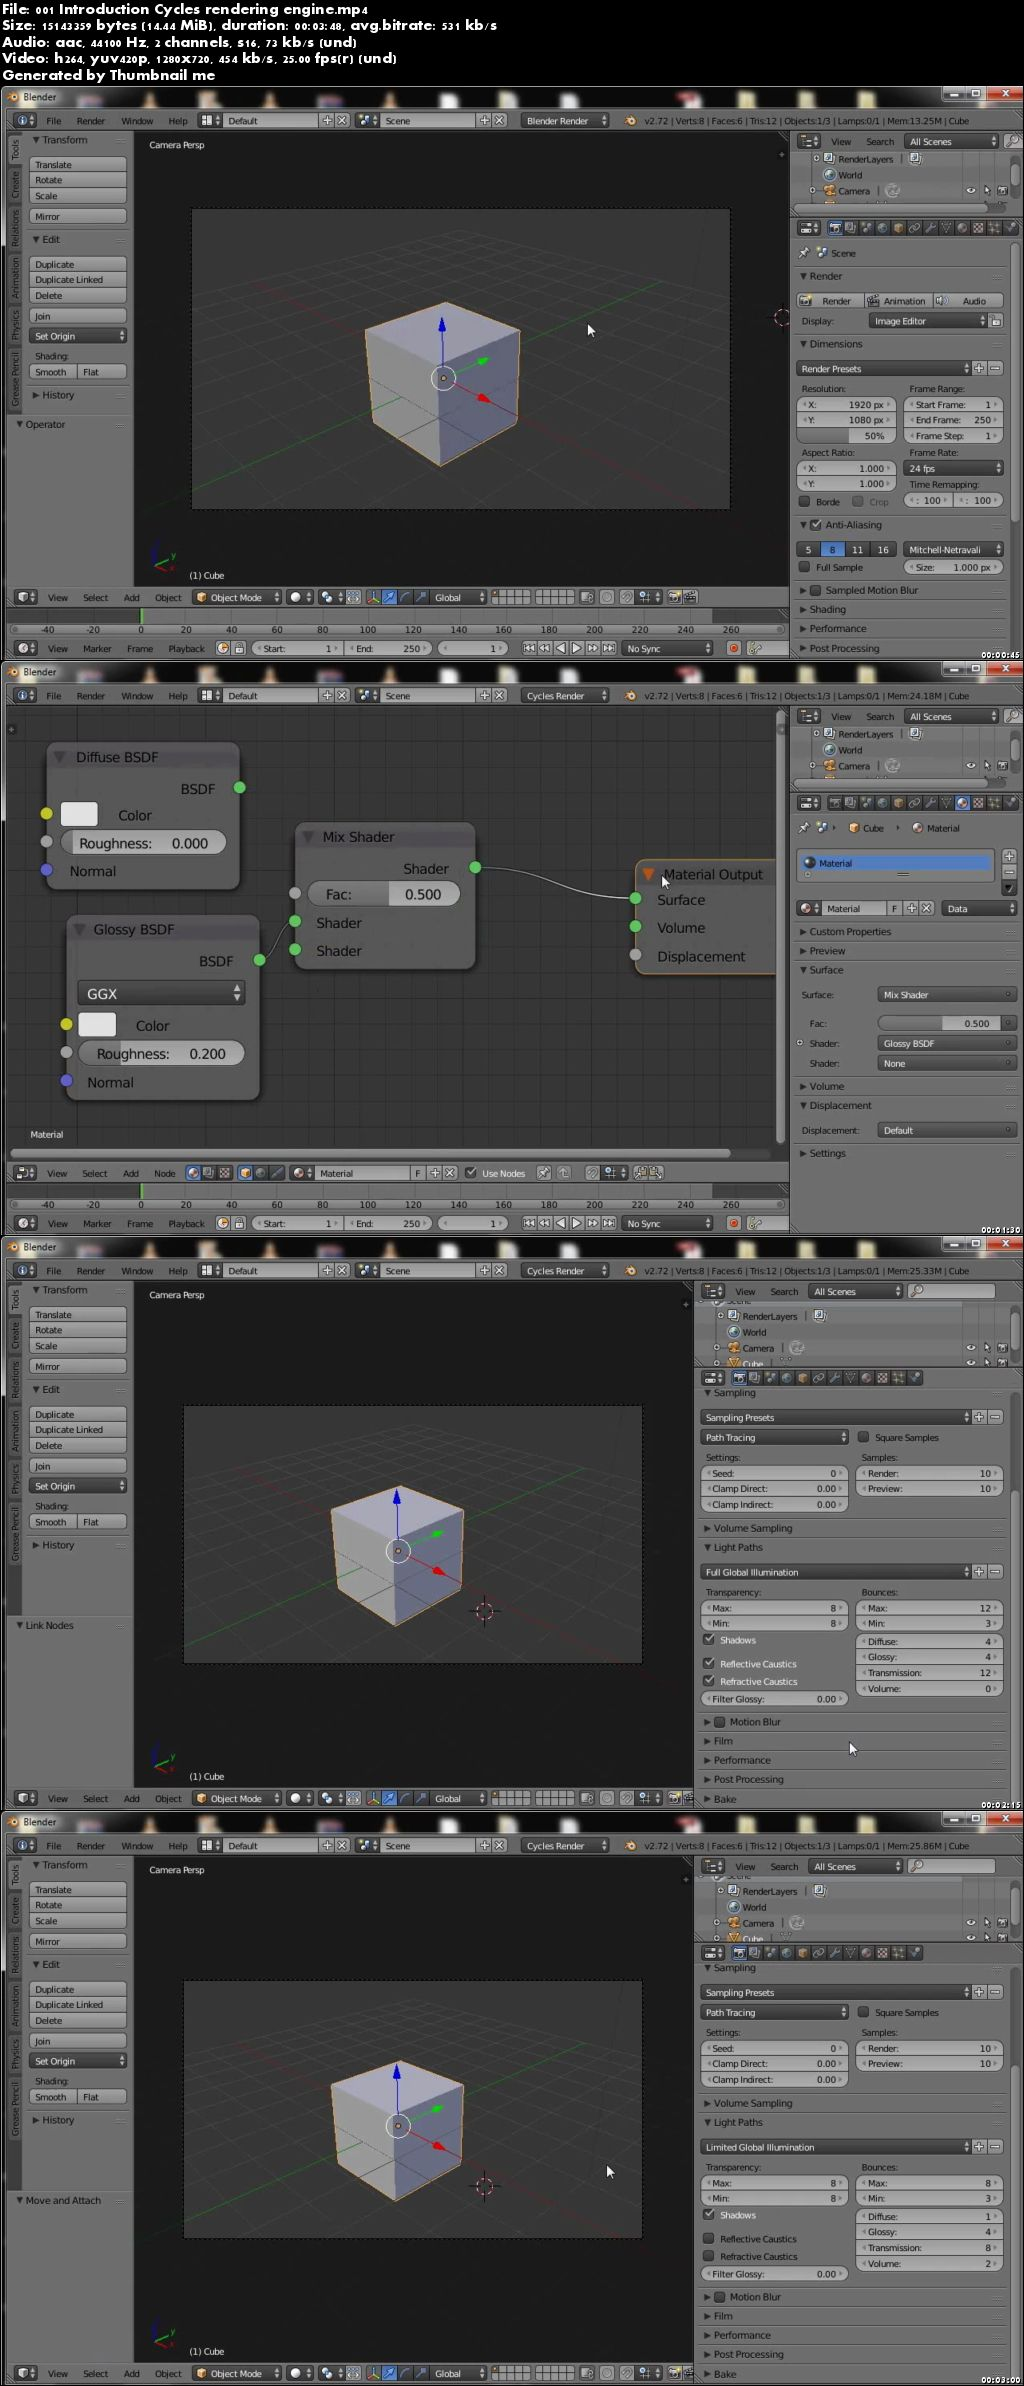 Cycles rendering engine in Blender 3D - Complete Guide